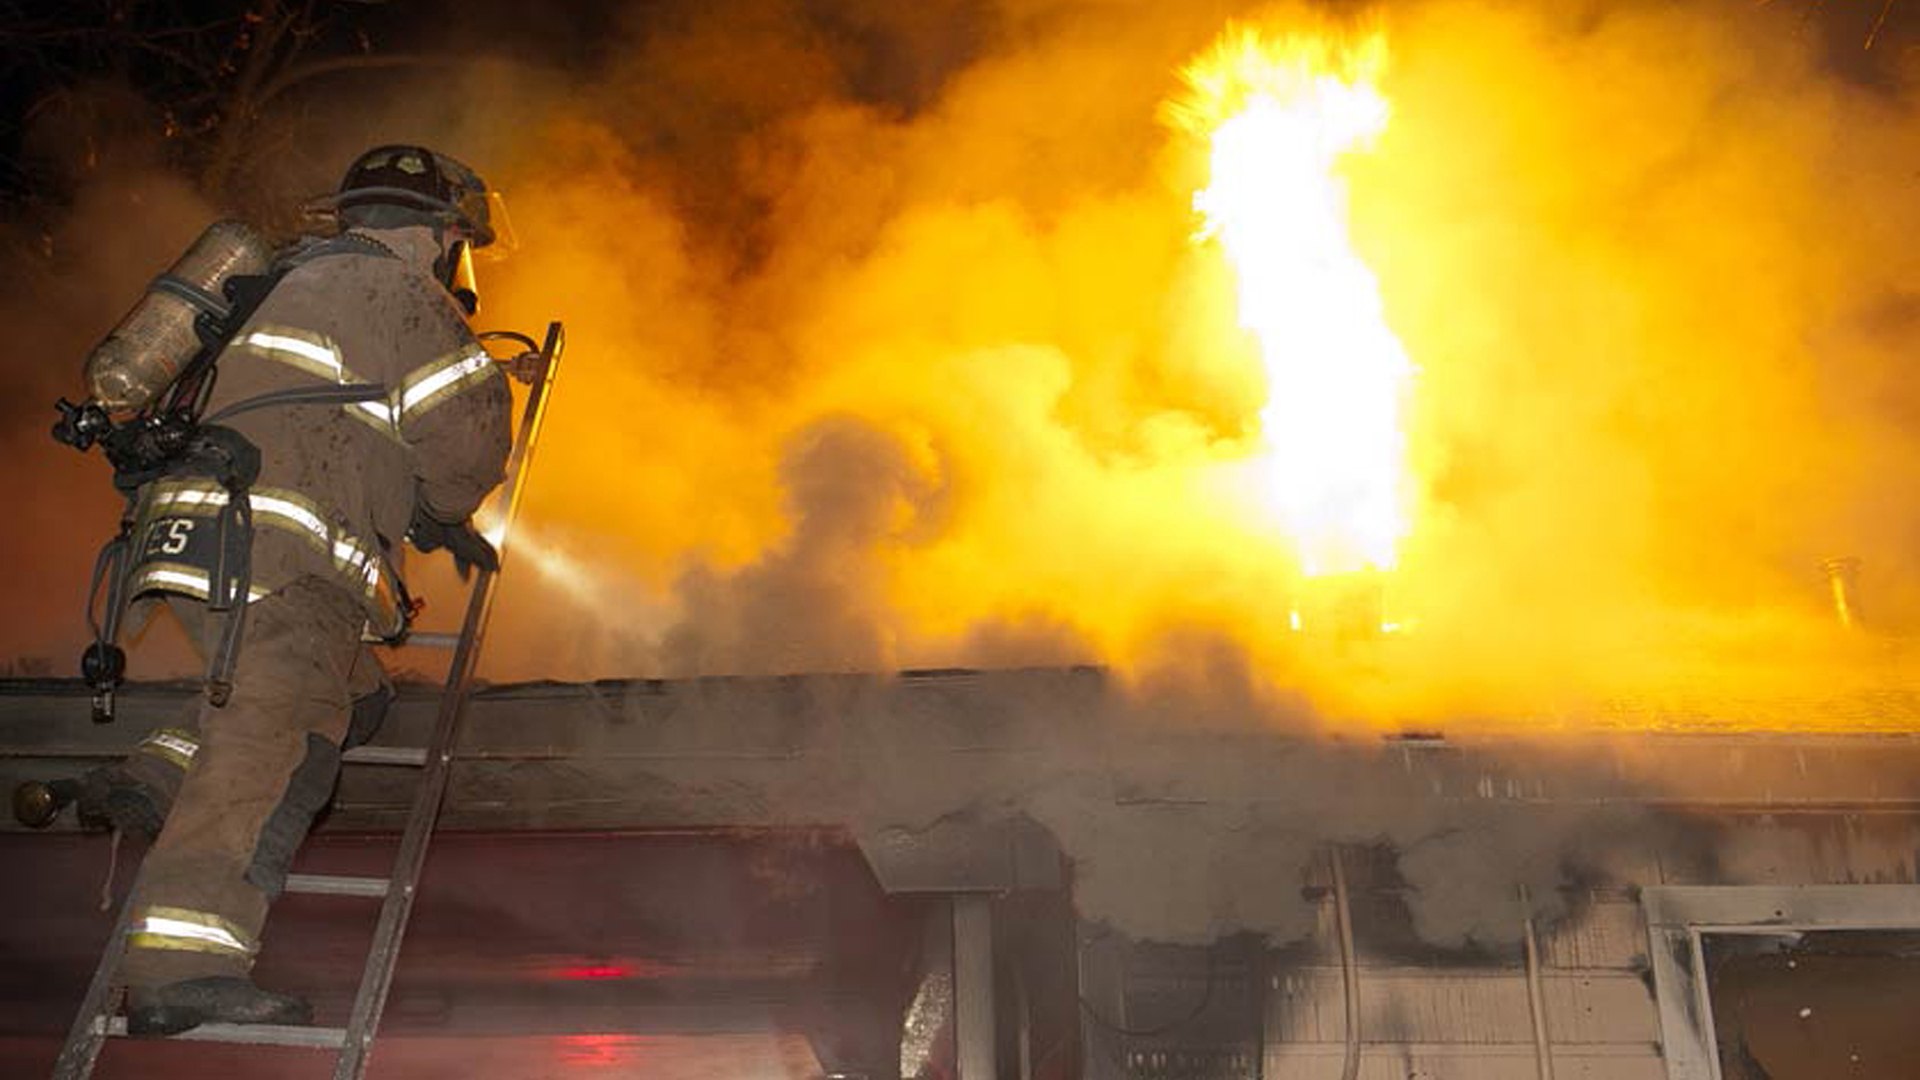 Fire Fighter on ladder with burning roof